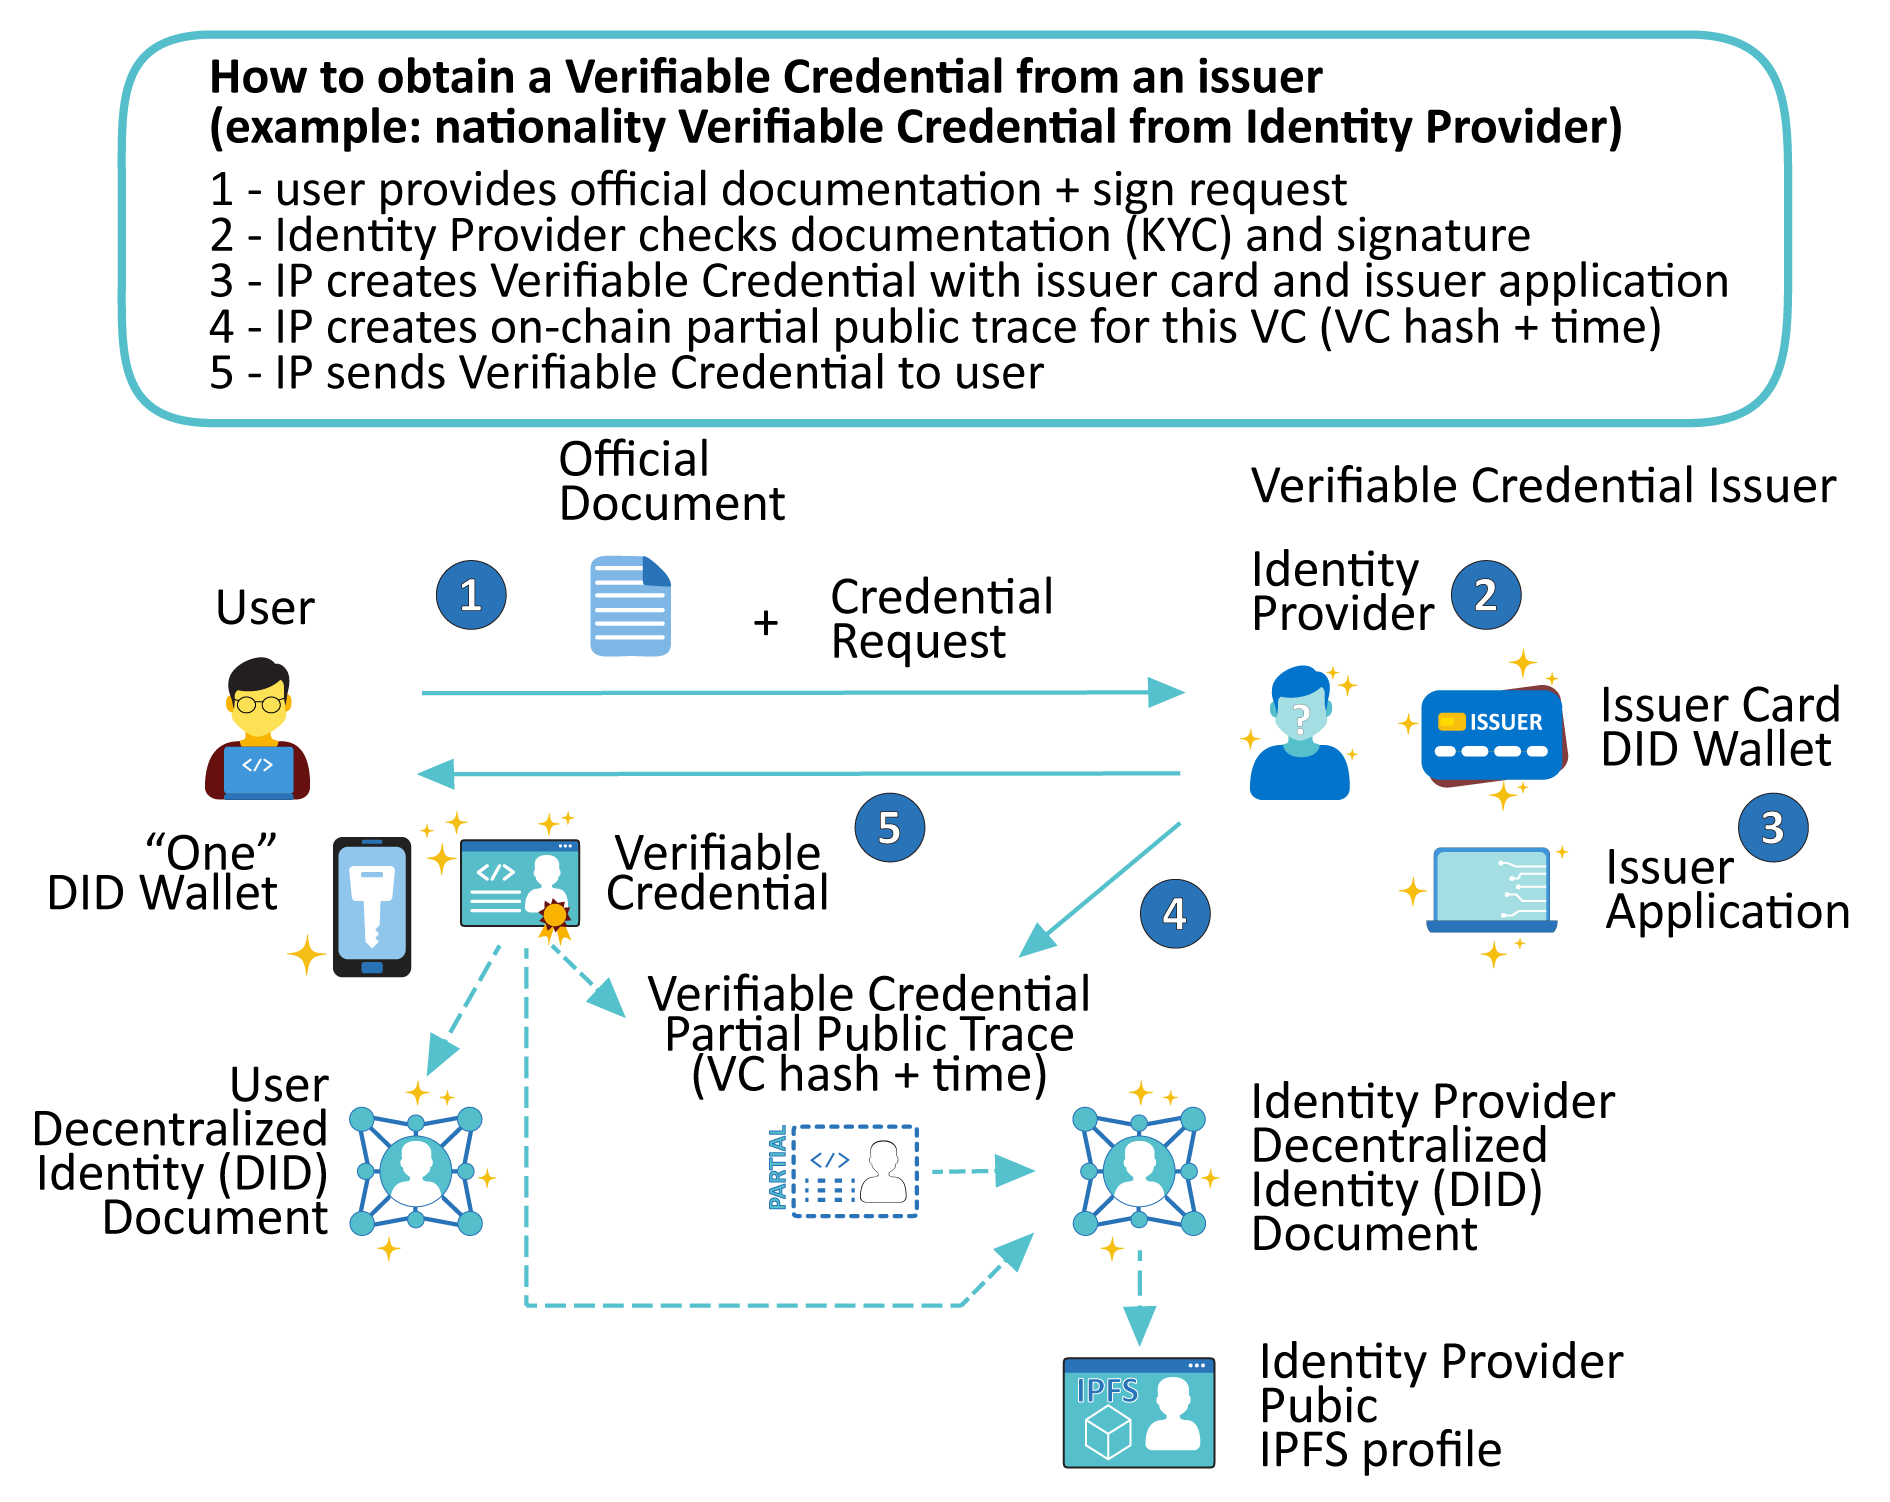 Figure 3-5 - Steps in requesting and receiving a Verifiable Credential